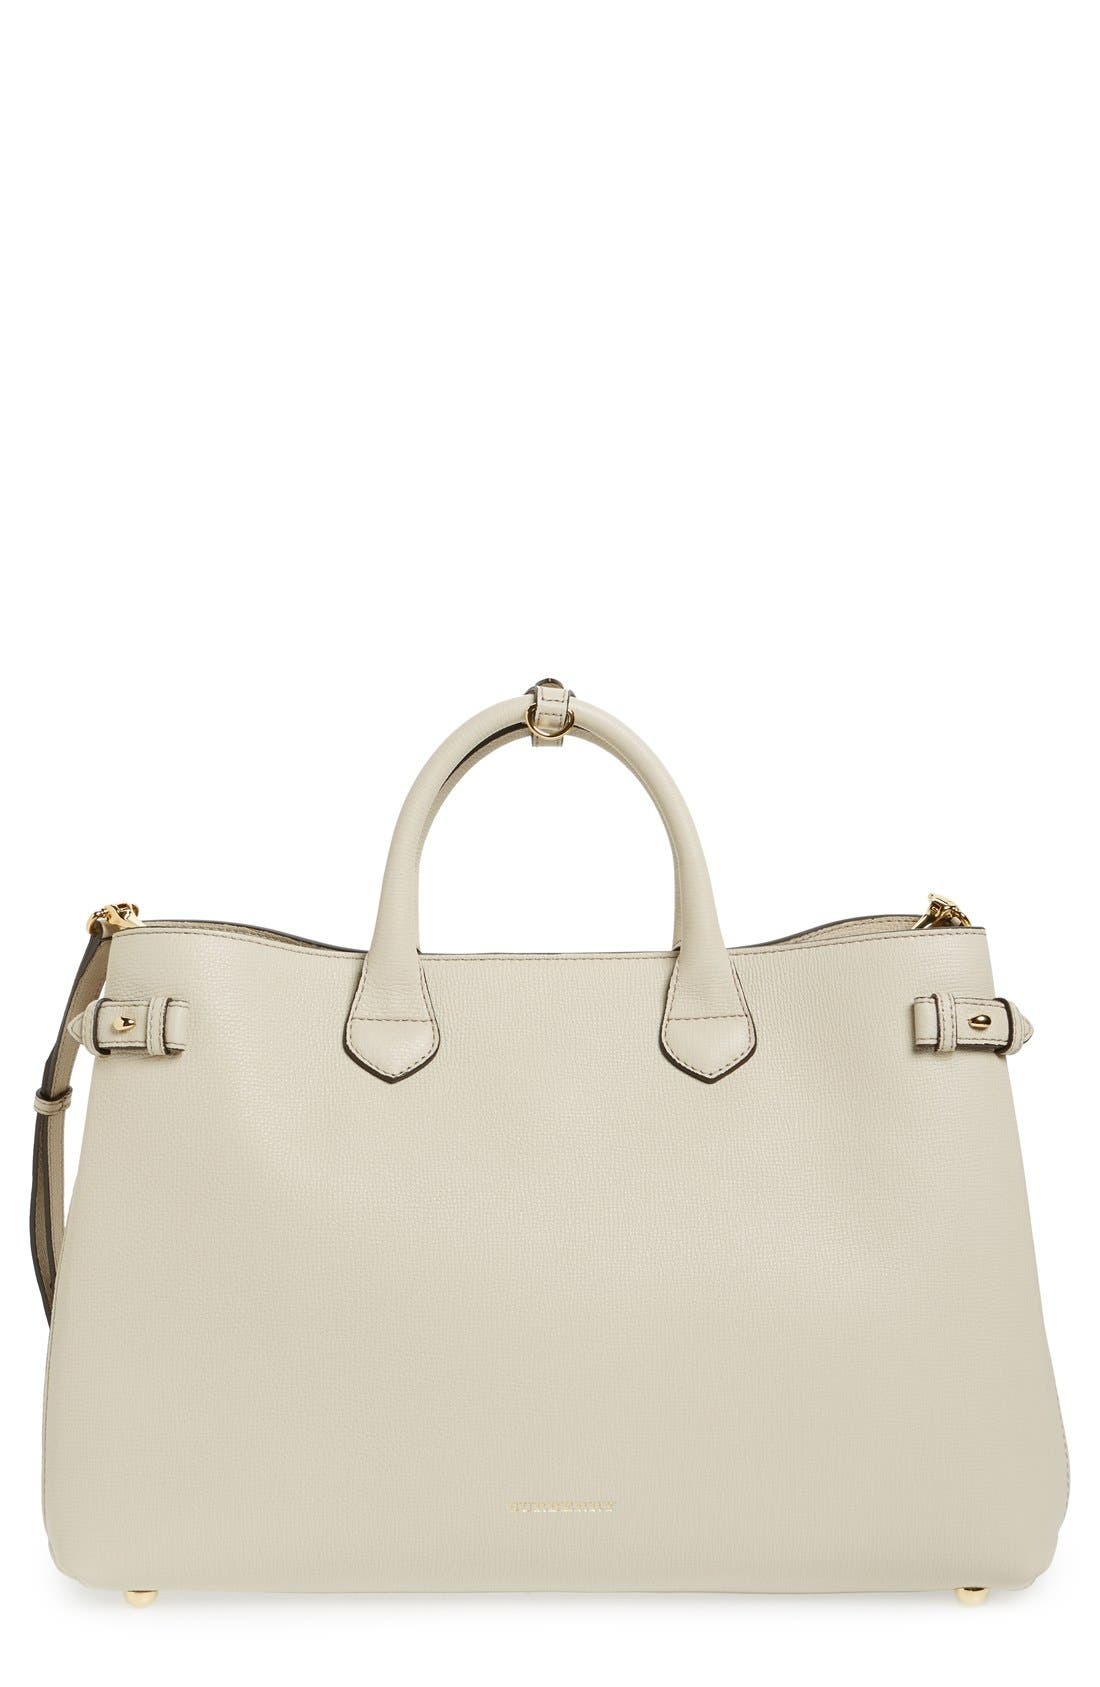 'Large Banner - Derby' House Check Calfskin Leather Tote, Main, color, 101